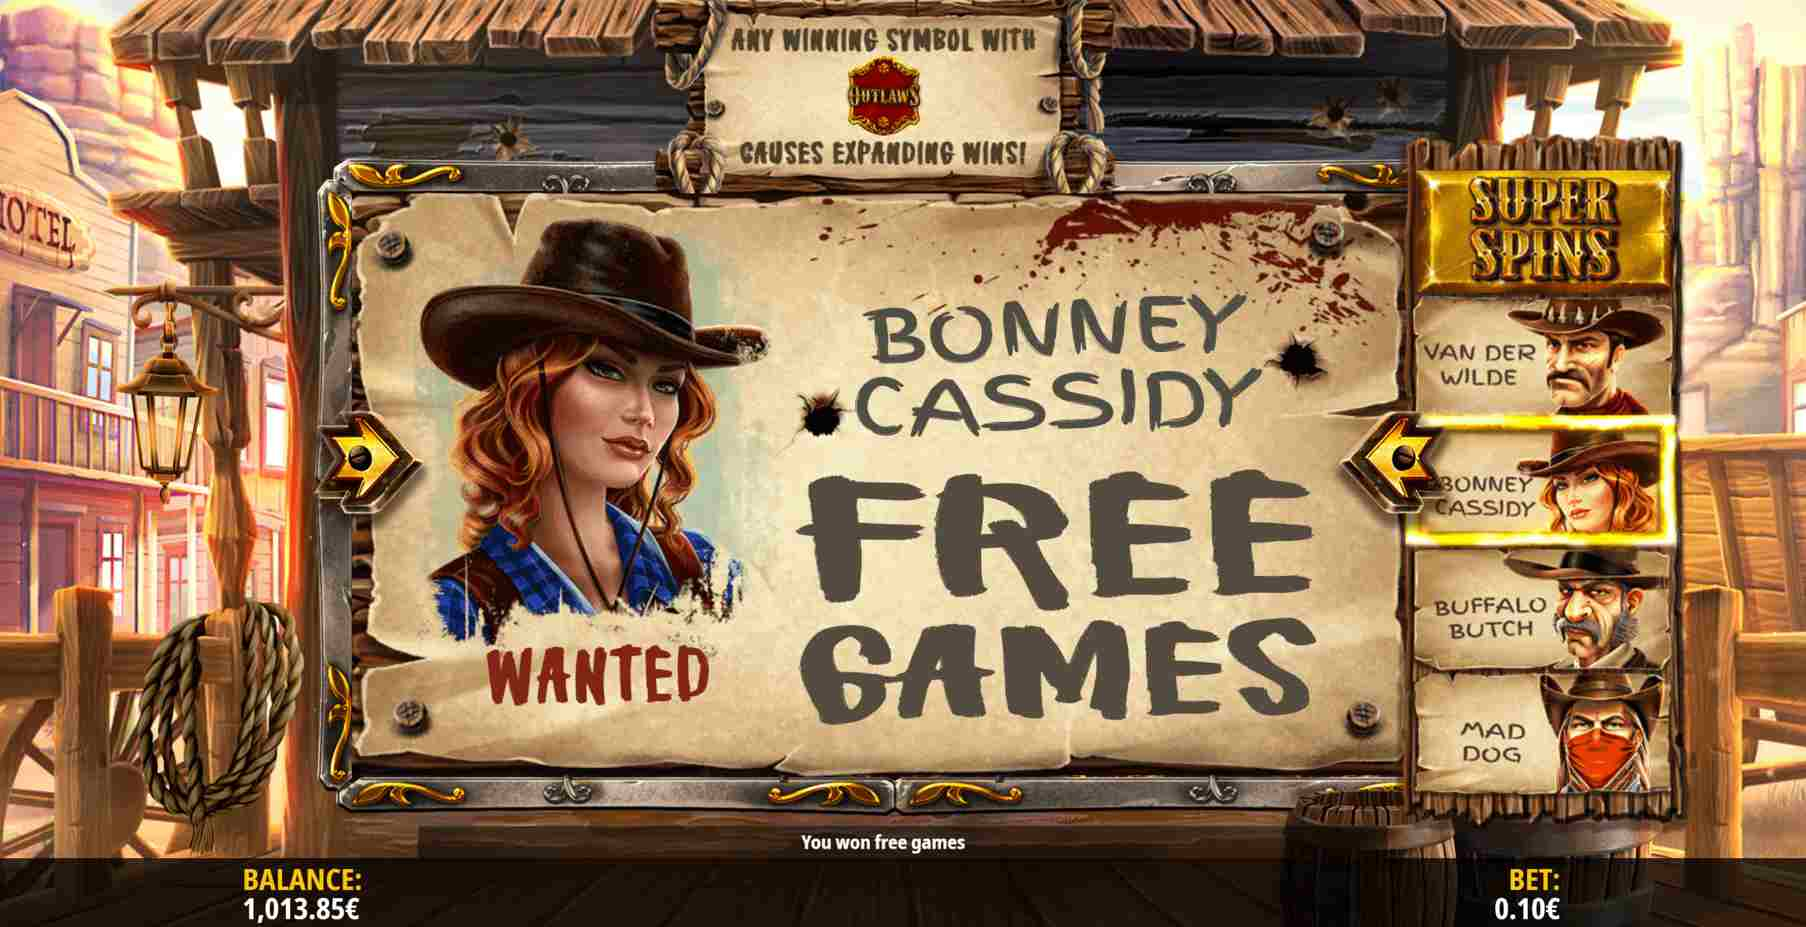 Van der Wilde and The Outlaws Free Spins Reel